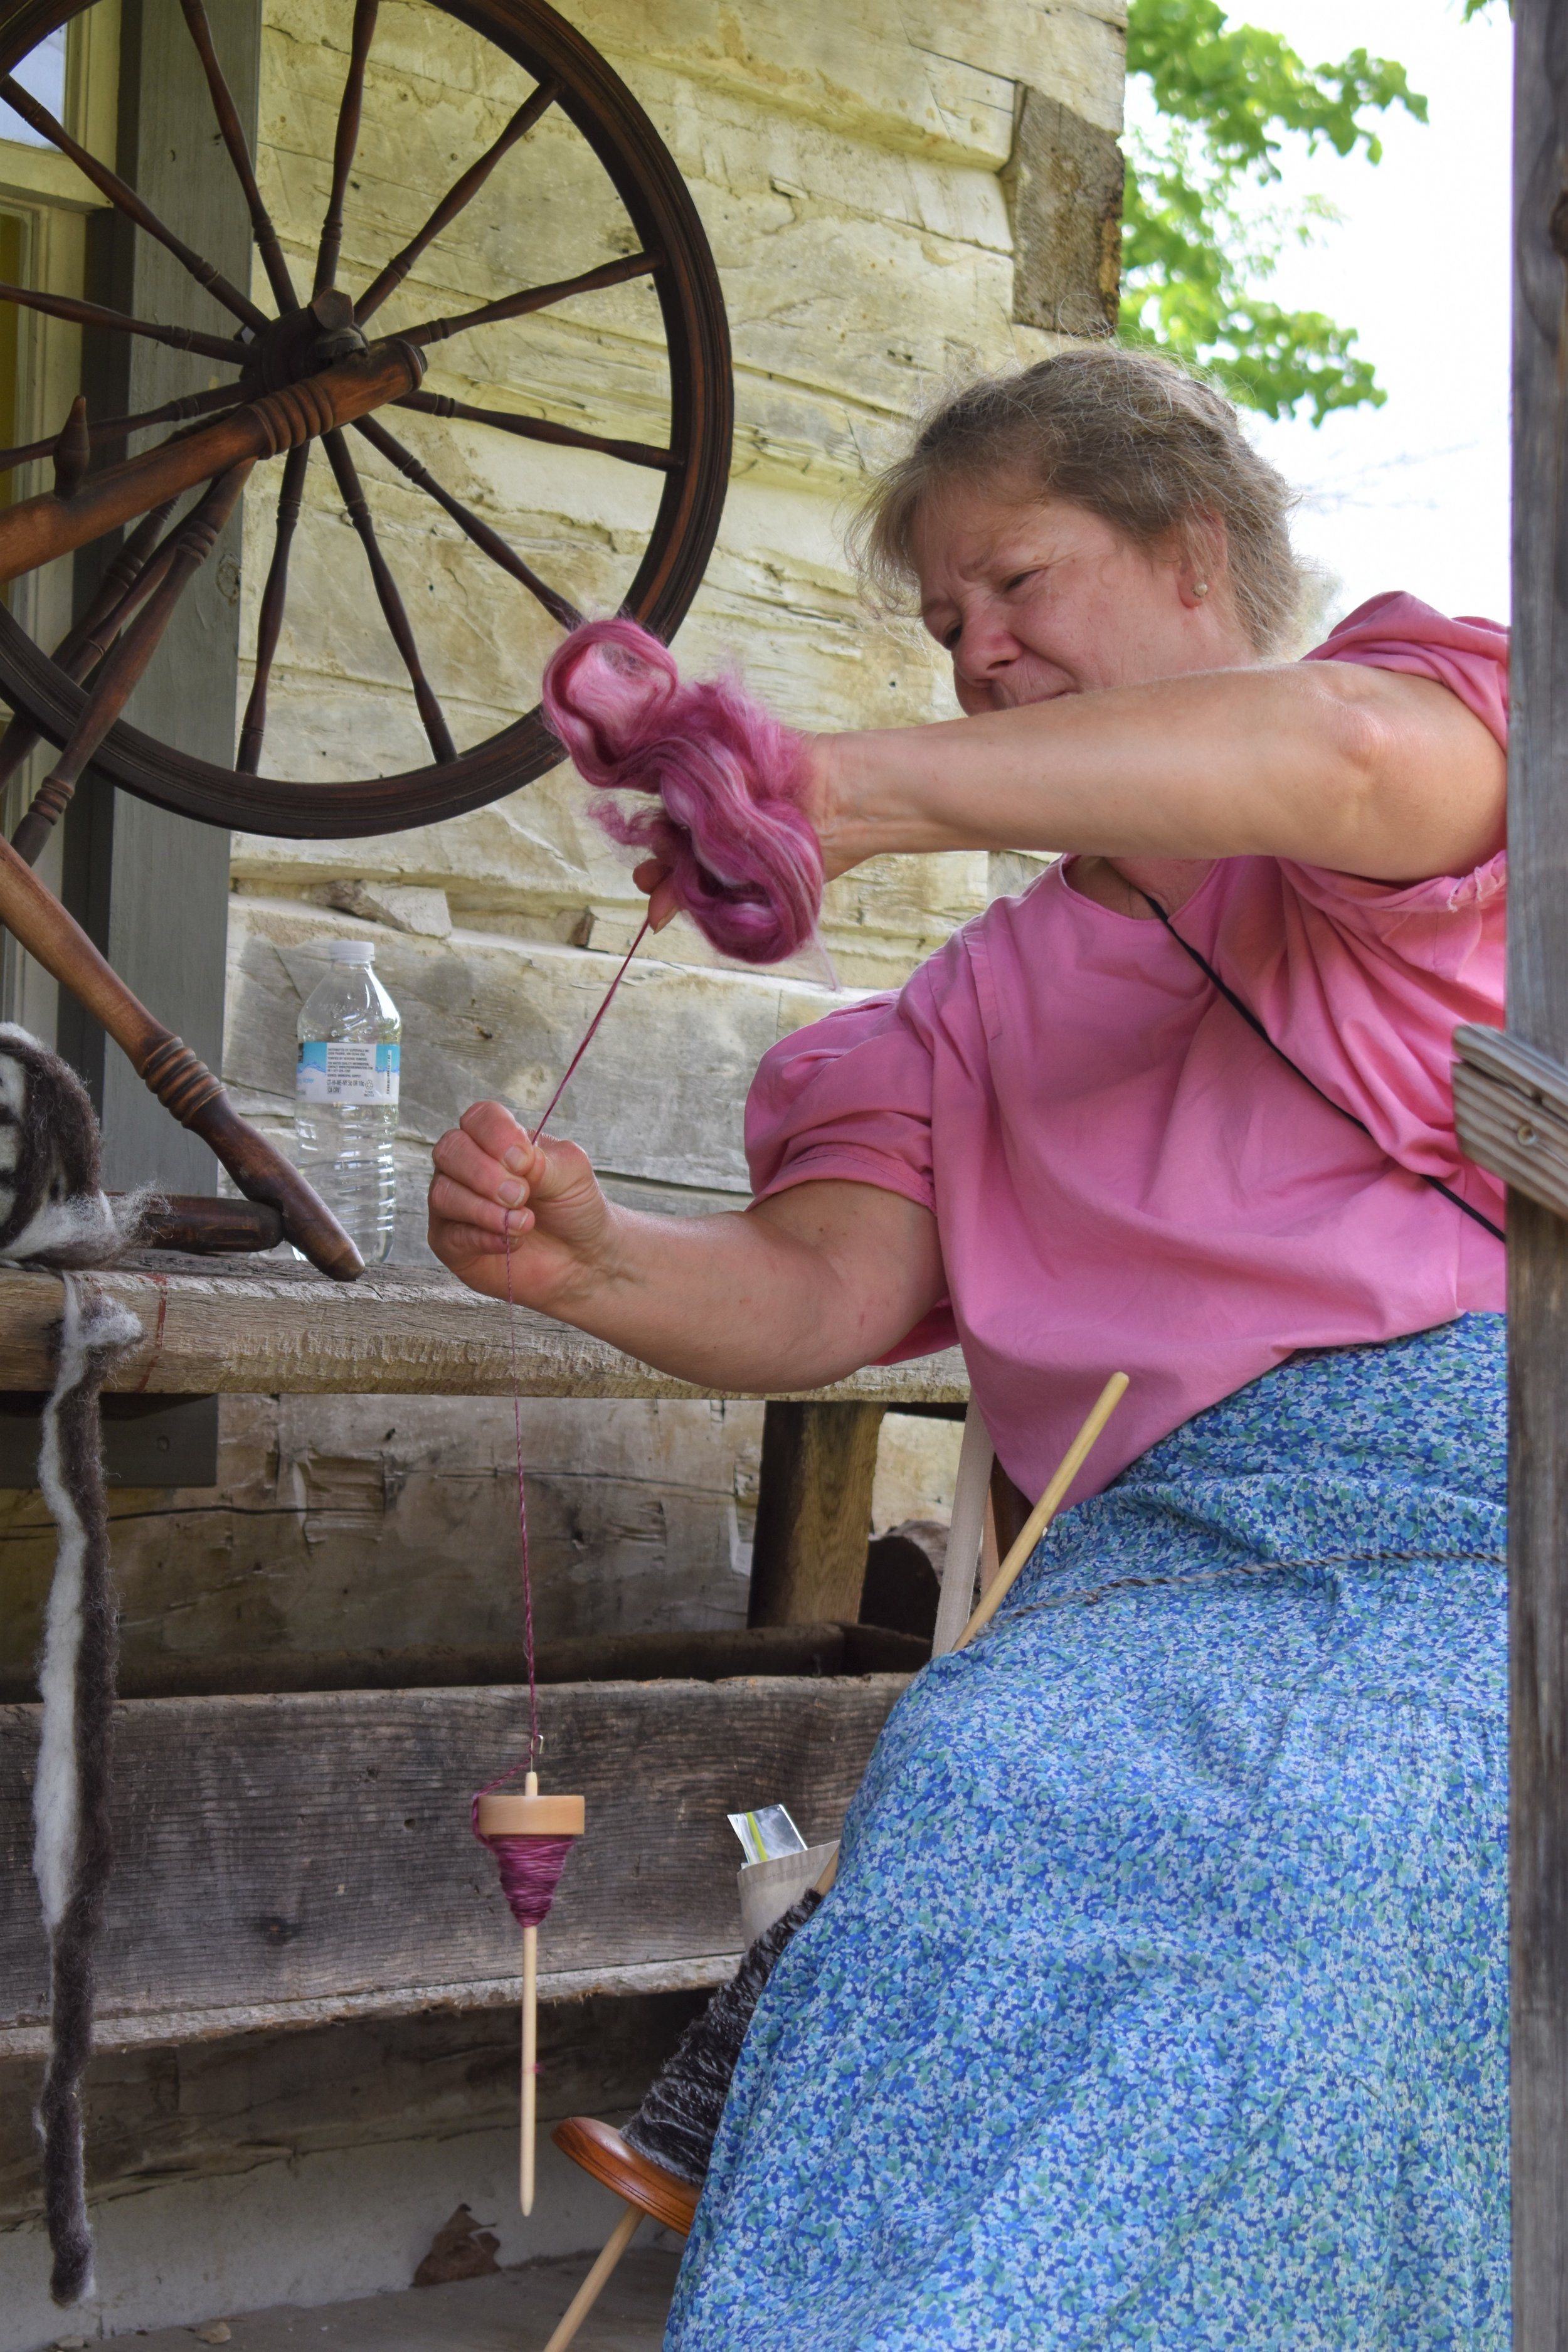 Spinning wool, Charlene Tumi of the Three Rivers Weaving and Spinning Group